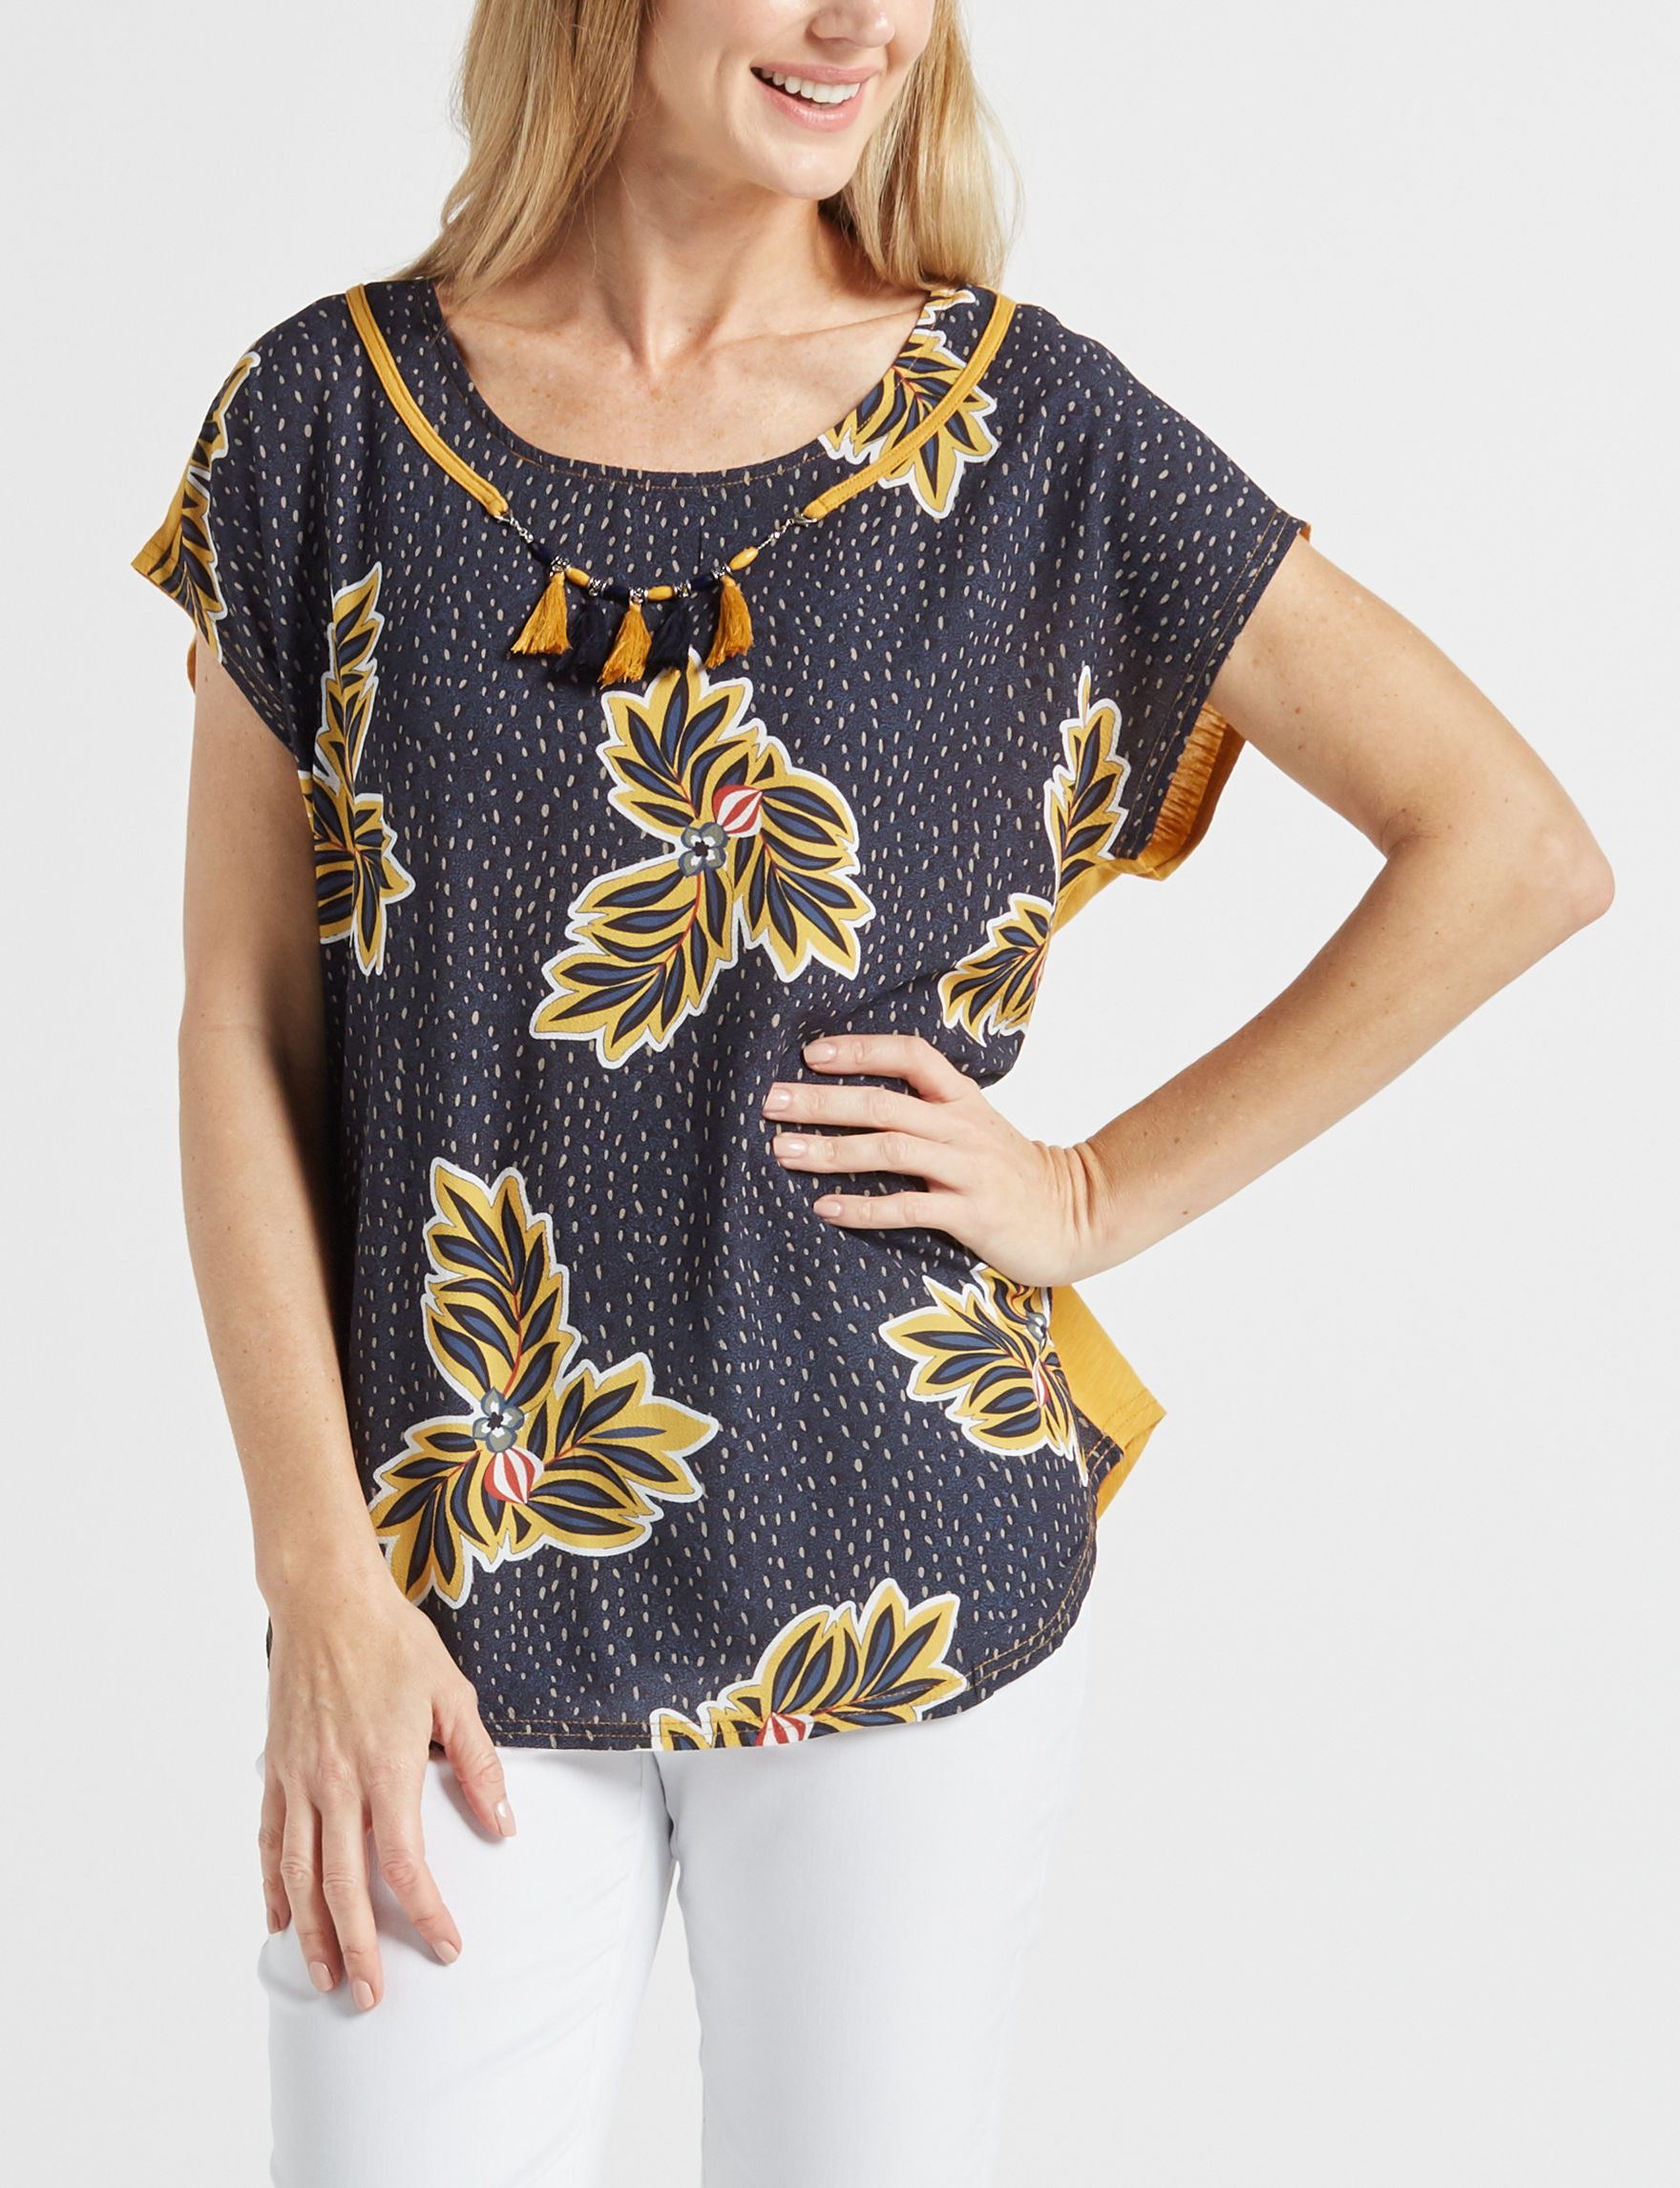 With Love Navy / Gold Shirts & Blouses